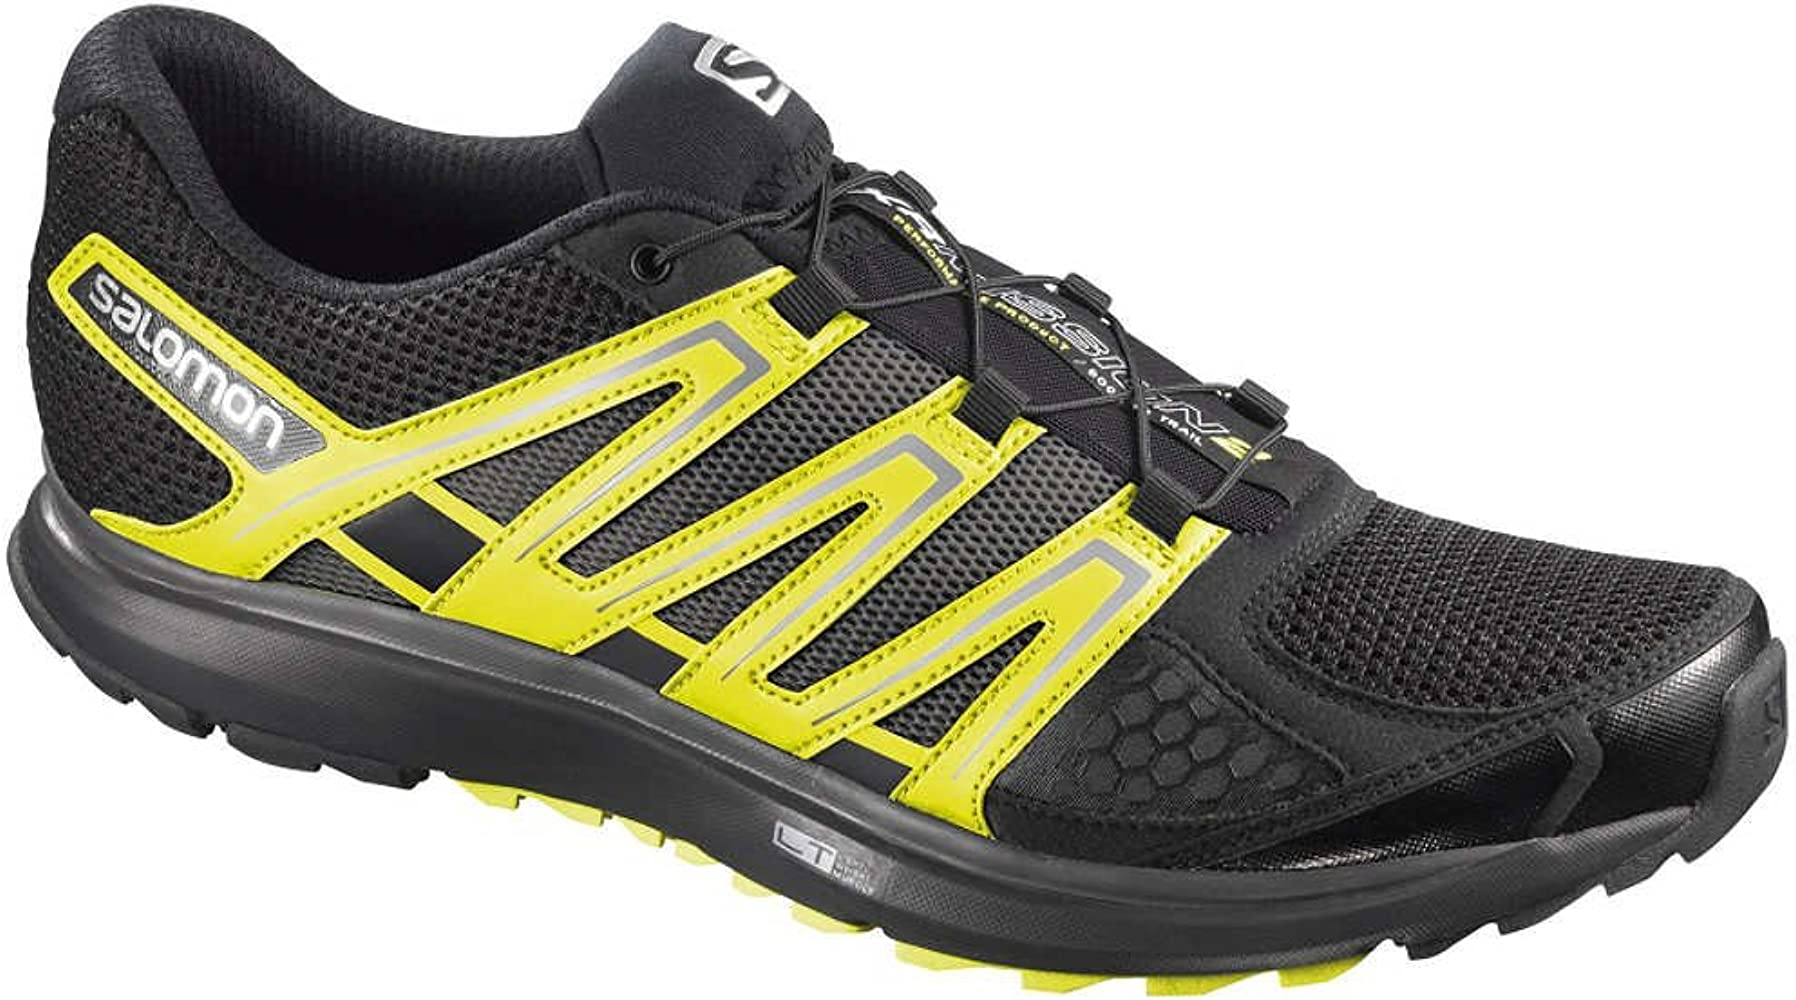 Salomon X-Scream 3D - Zapatillas de trail para hombre, color ...